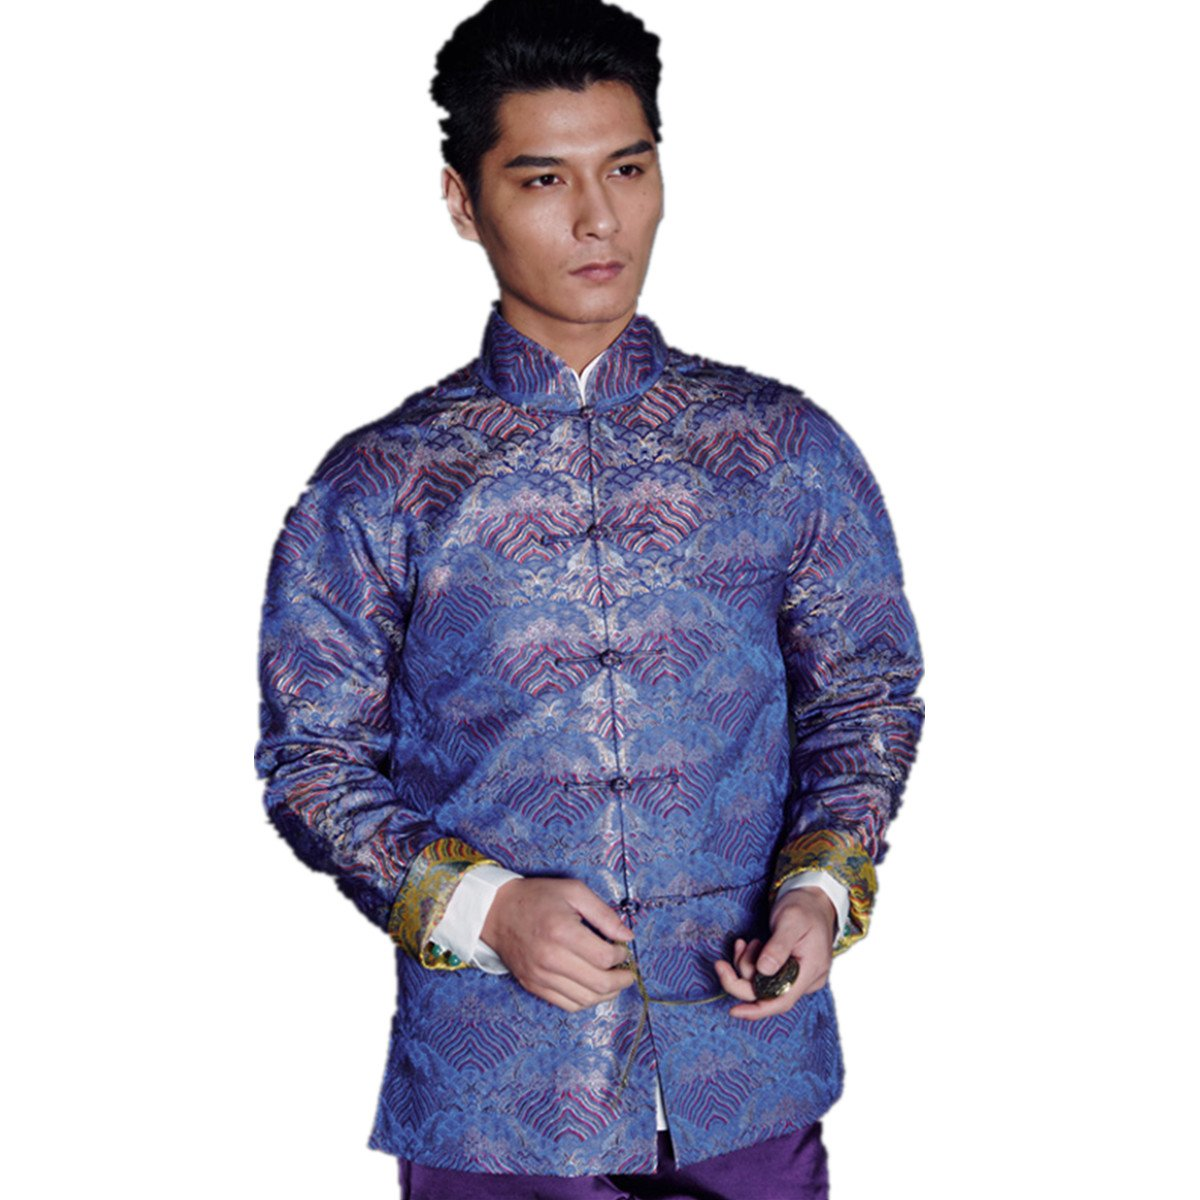 WEISAN Chinese Ancient Jacquard Pattern Jacket Spring Autumn Costume Coat Mens